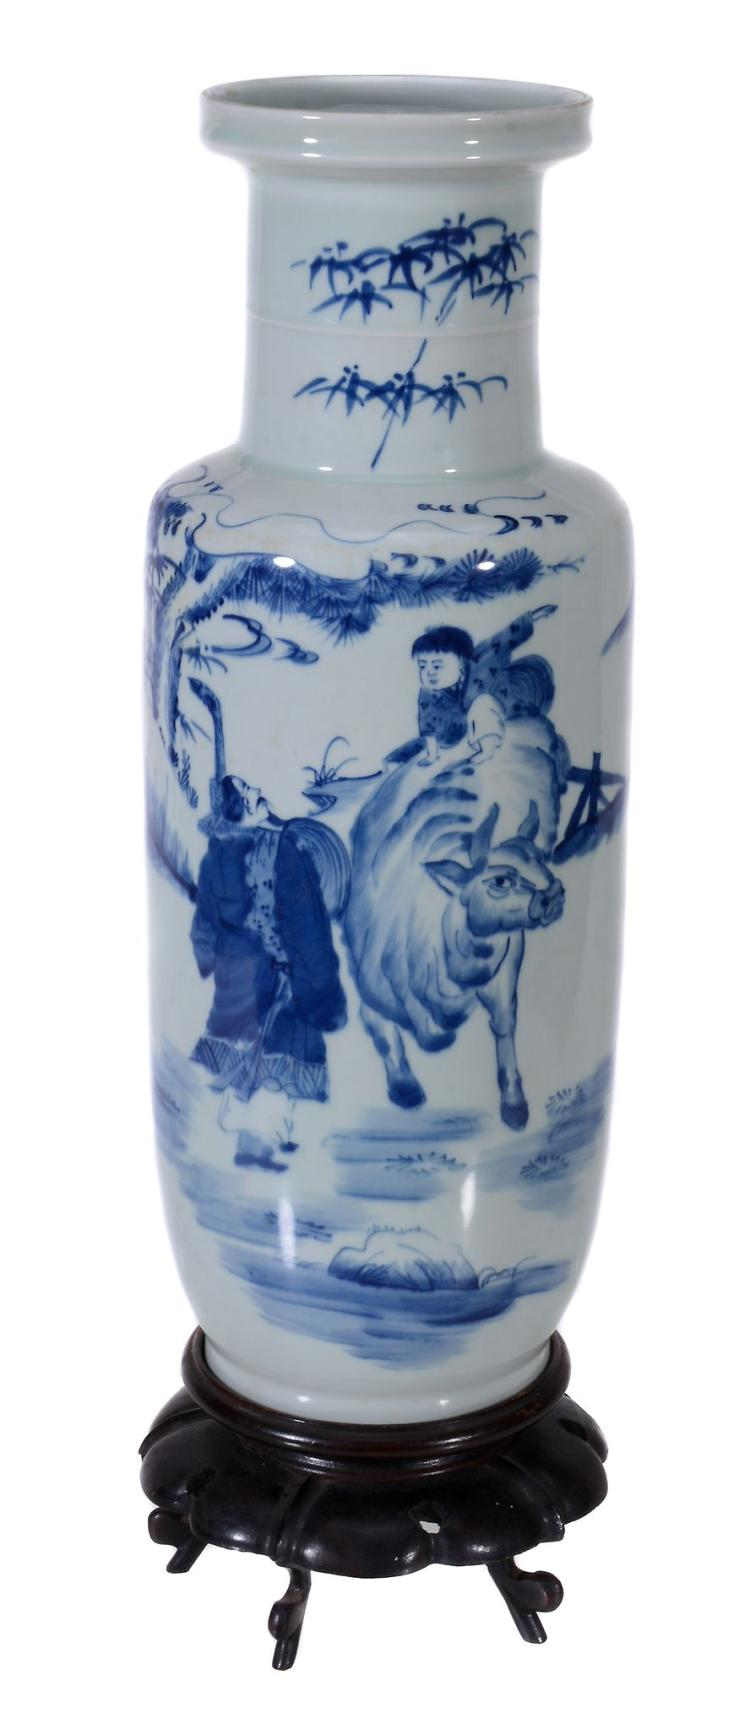 A Chinese blue and white rouleau vase, 20th century, the vase 44cm high